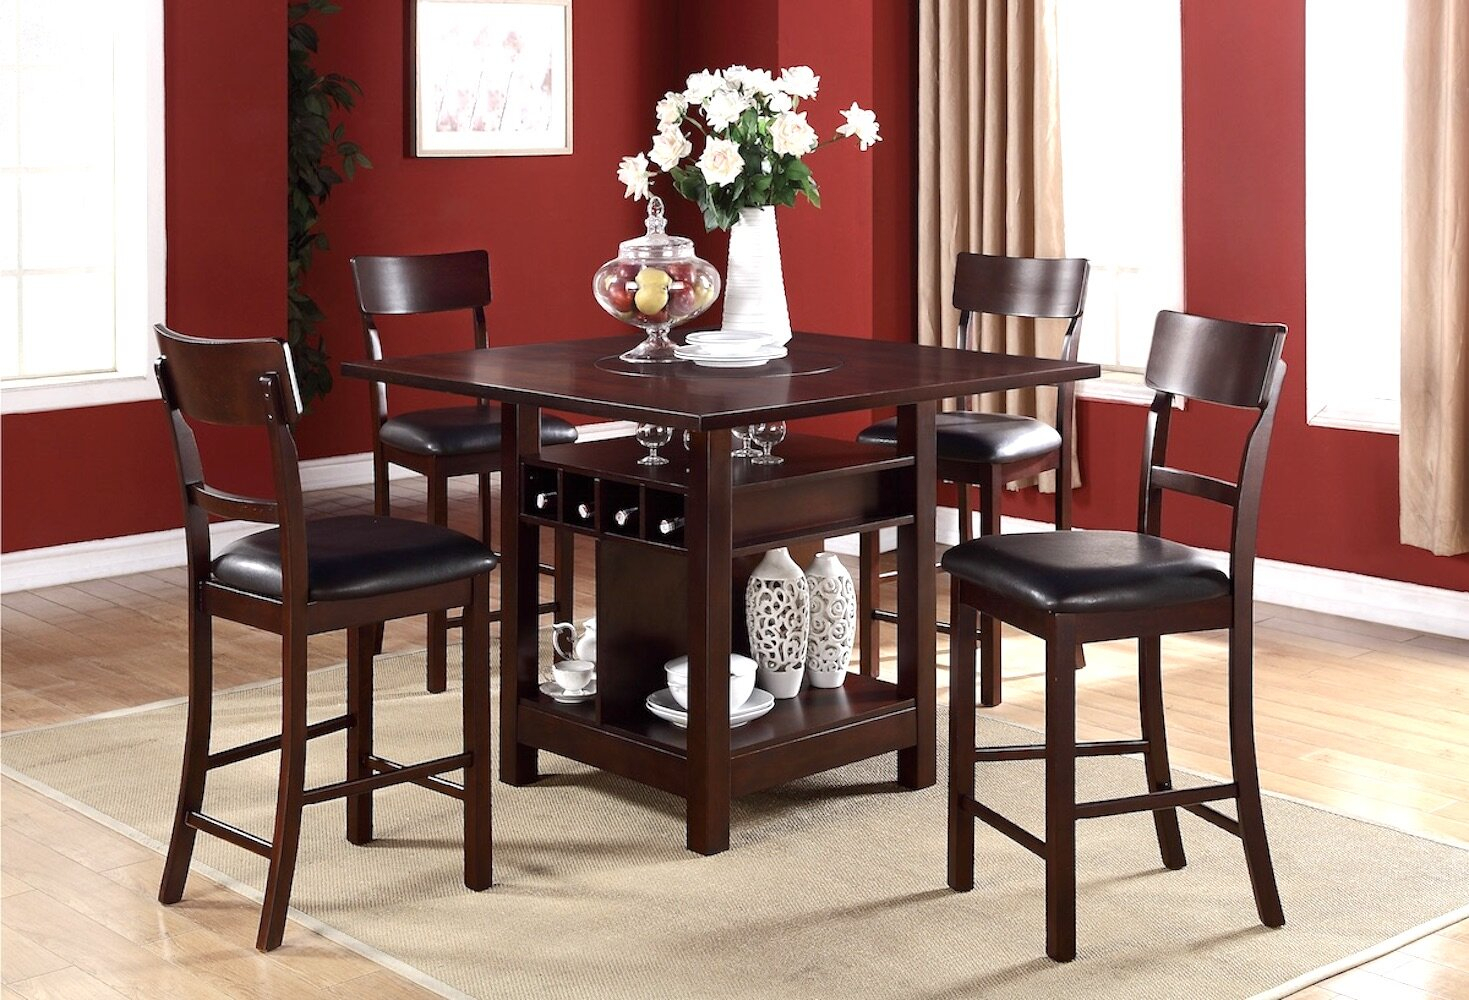 Stevenson 5 Piece Pub Table Set In Best And Newest Biggs 5 Piece Counter Height Solid Wood Dining Sets (Set Of 5) (View 6 of 20)